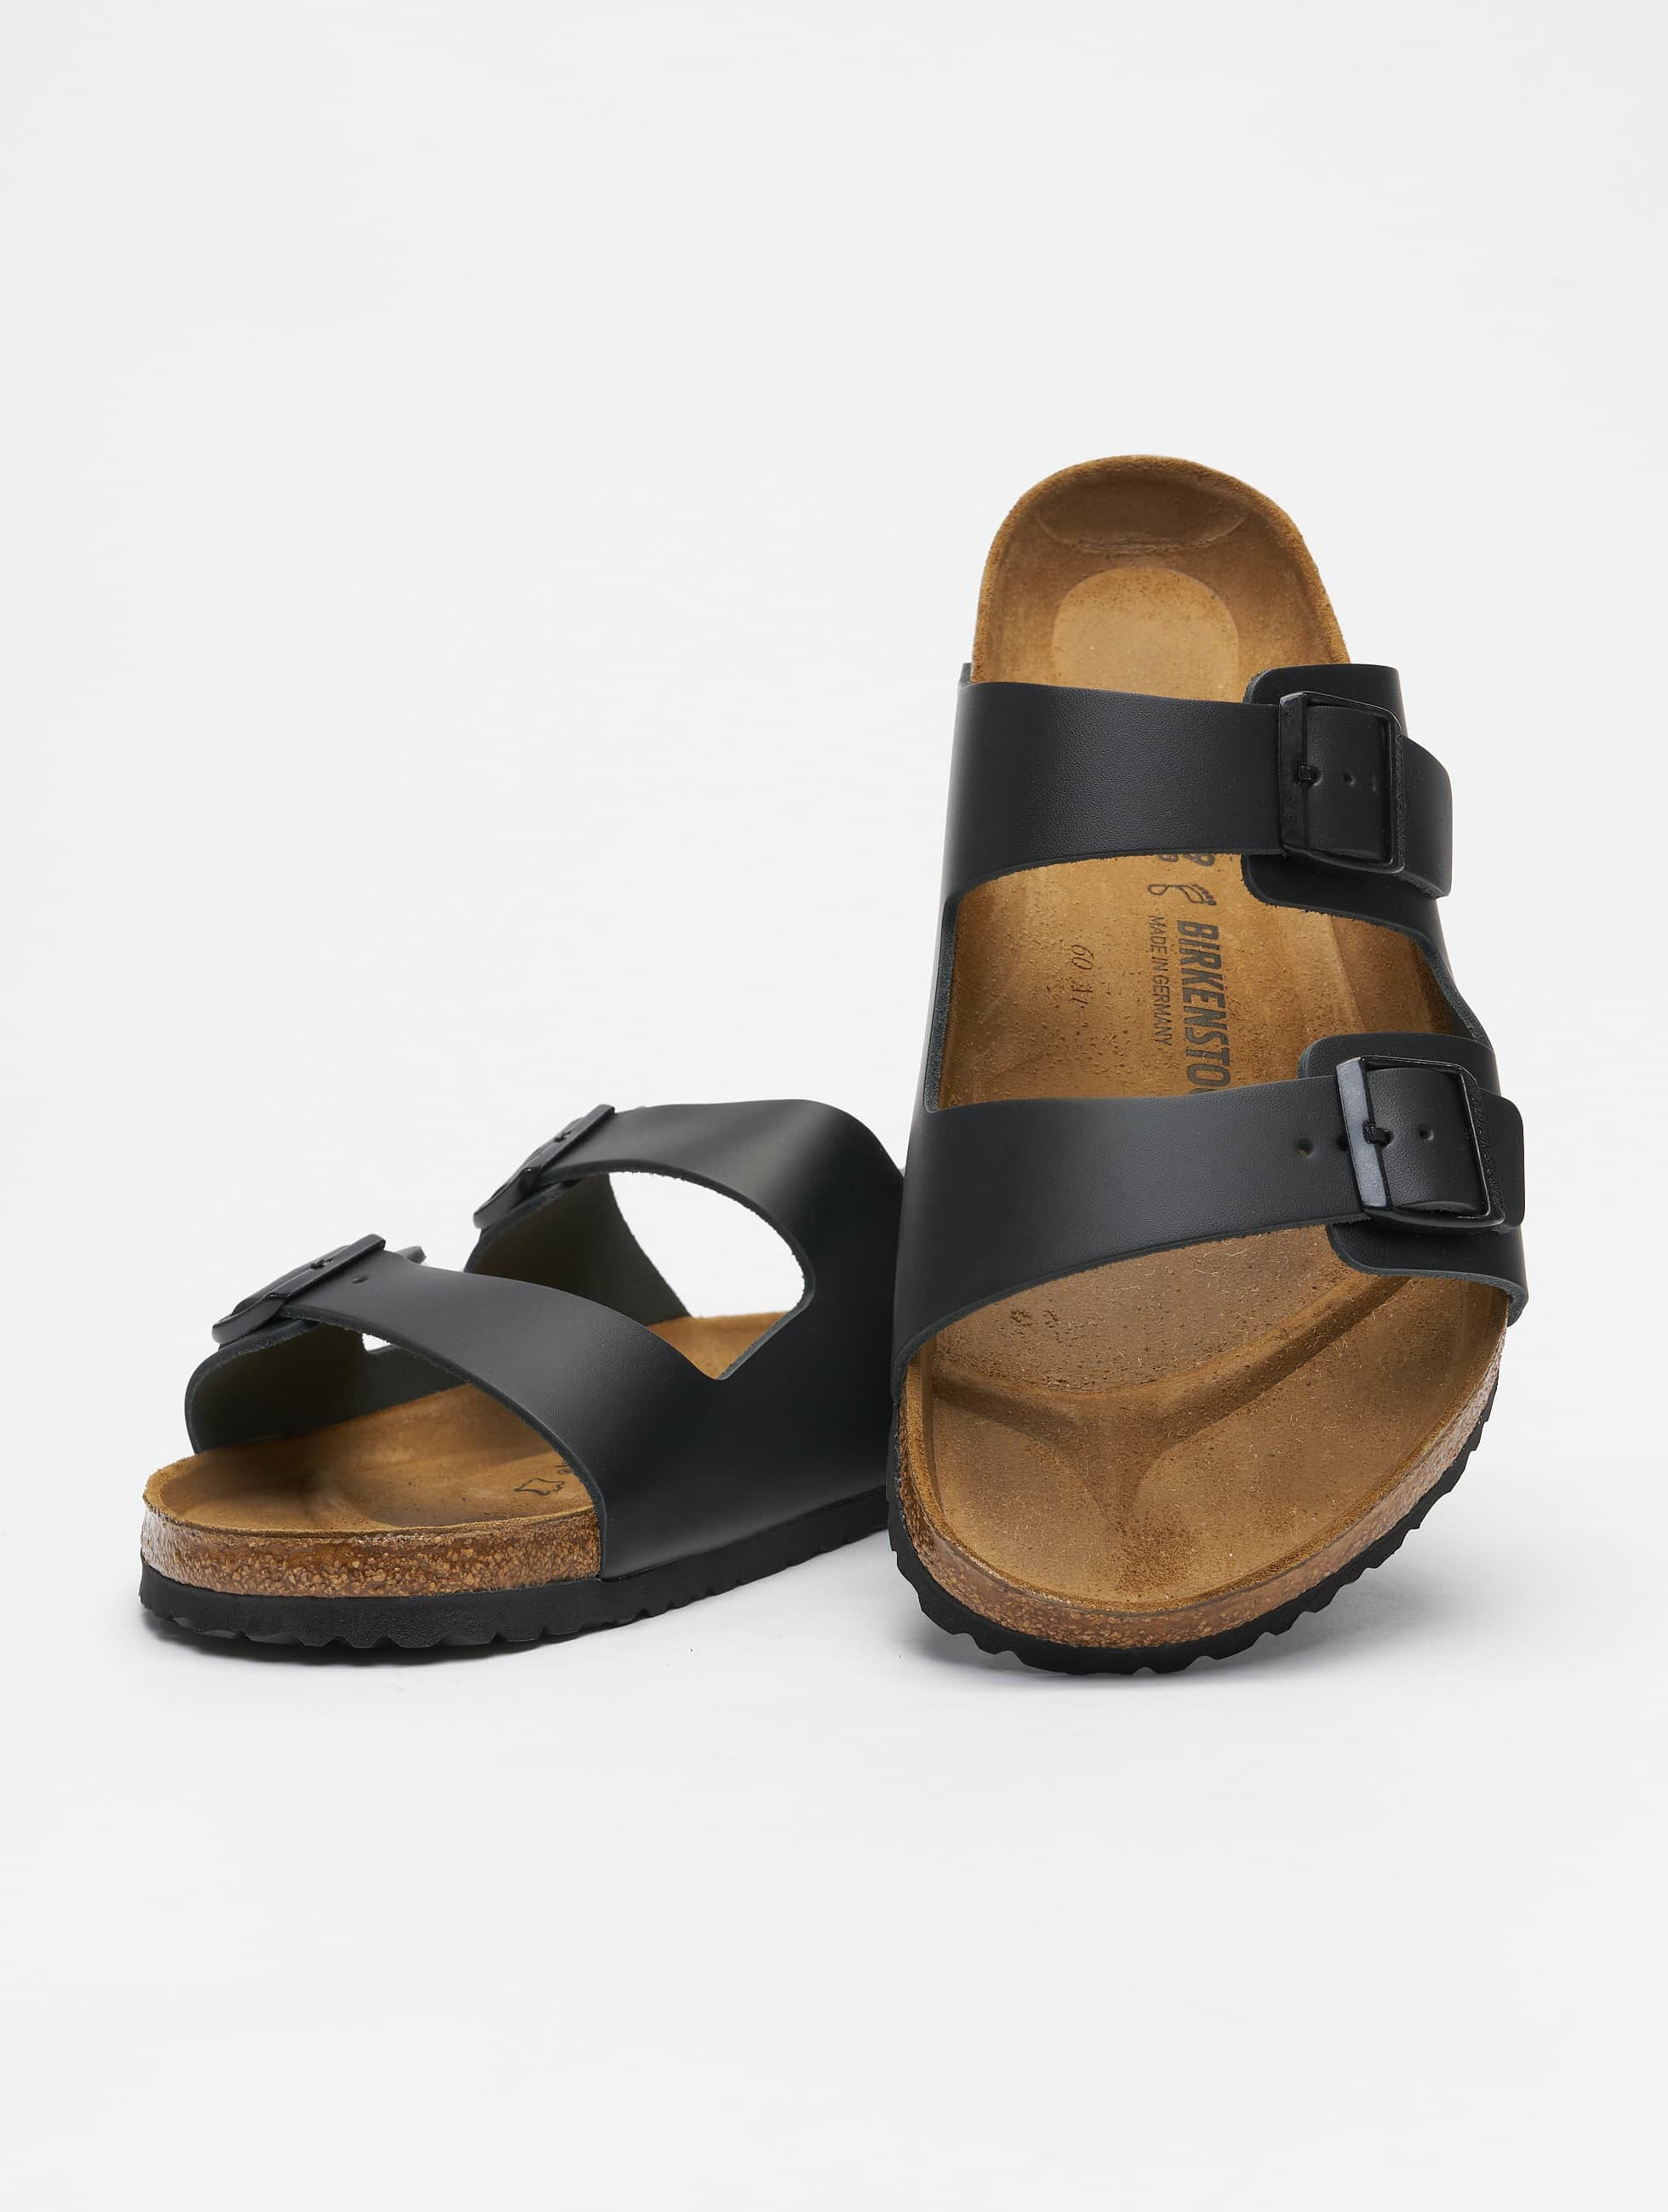 Birkenstock Arizona NL Sandals Black